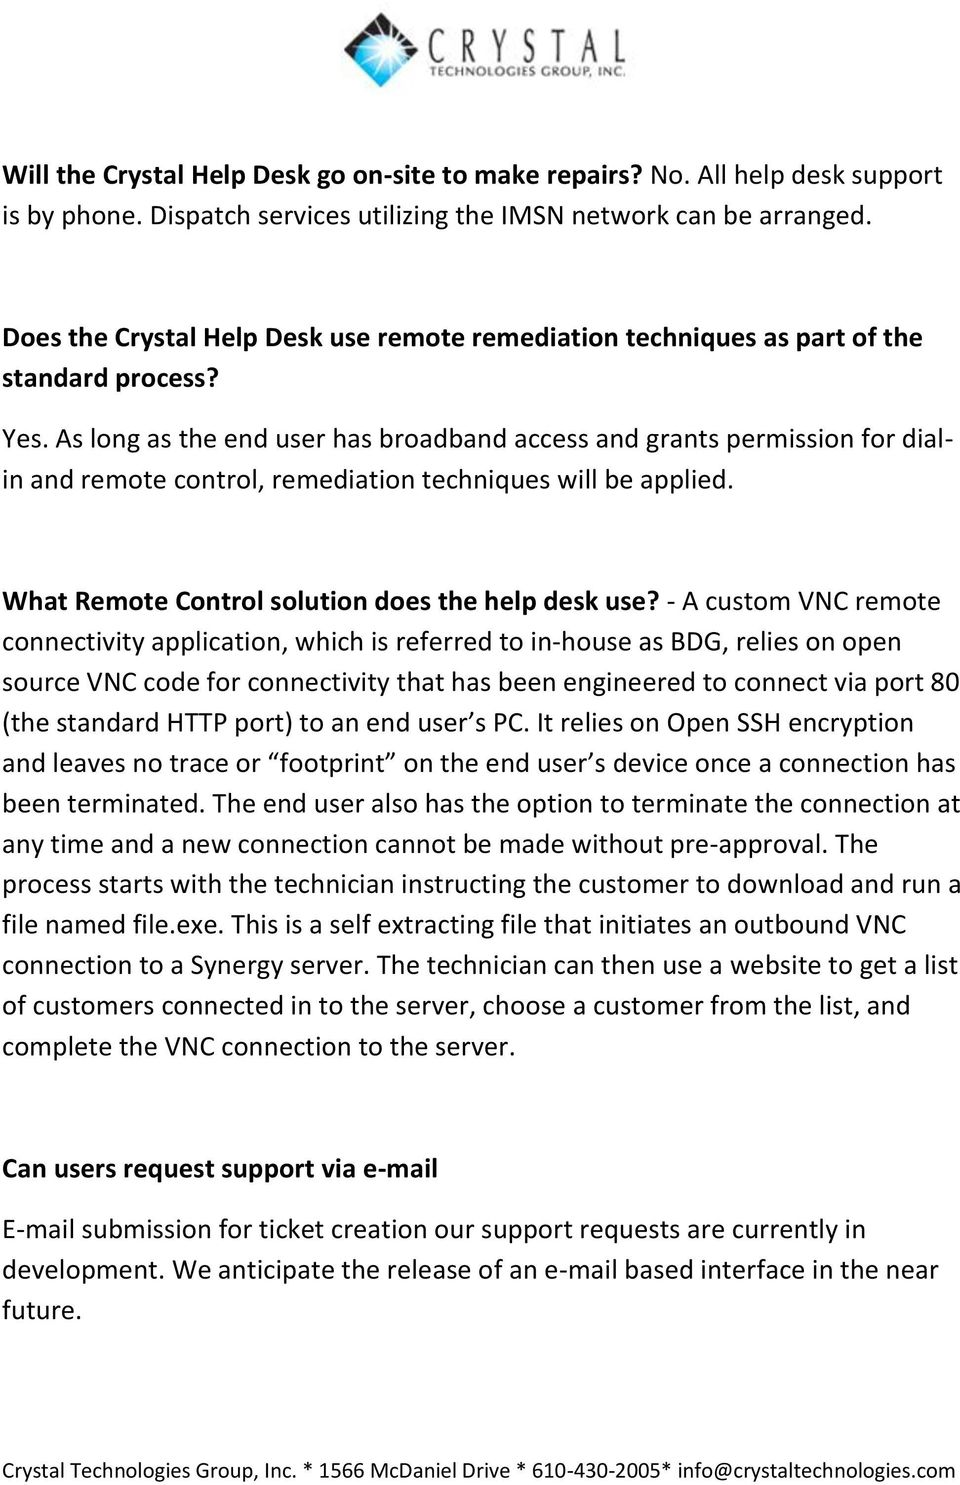 As long as the end user has broadband access and grants permission for dialin and remote control, remediation techniques will be applied. What Remote Control solution does the help desk use?